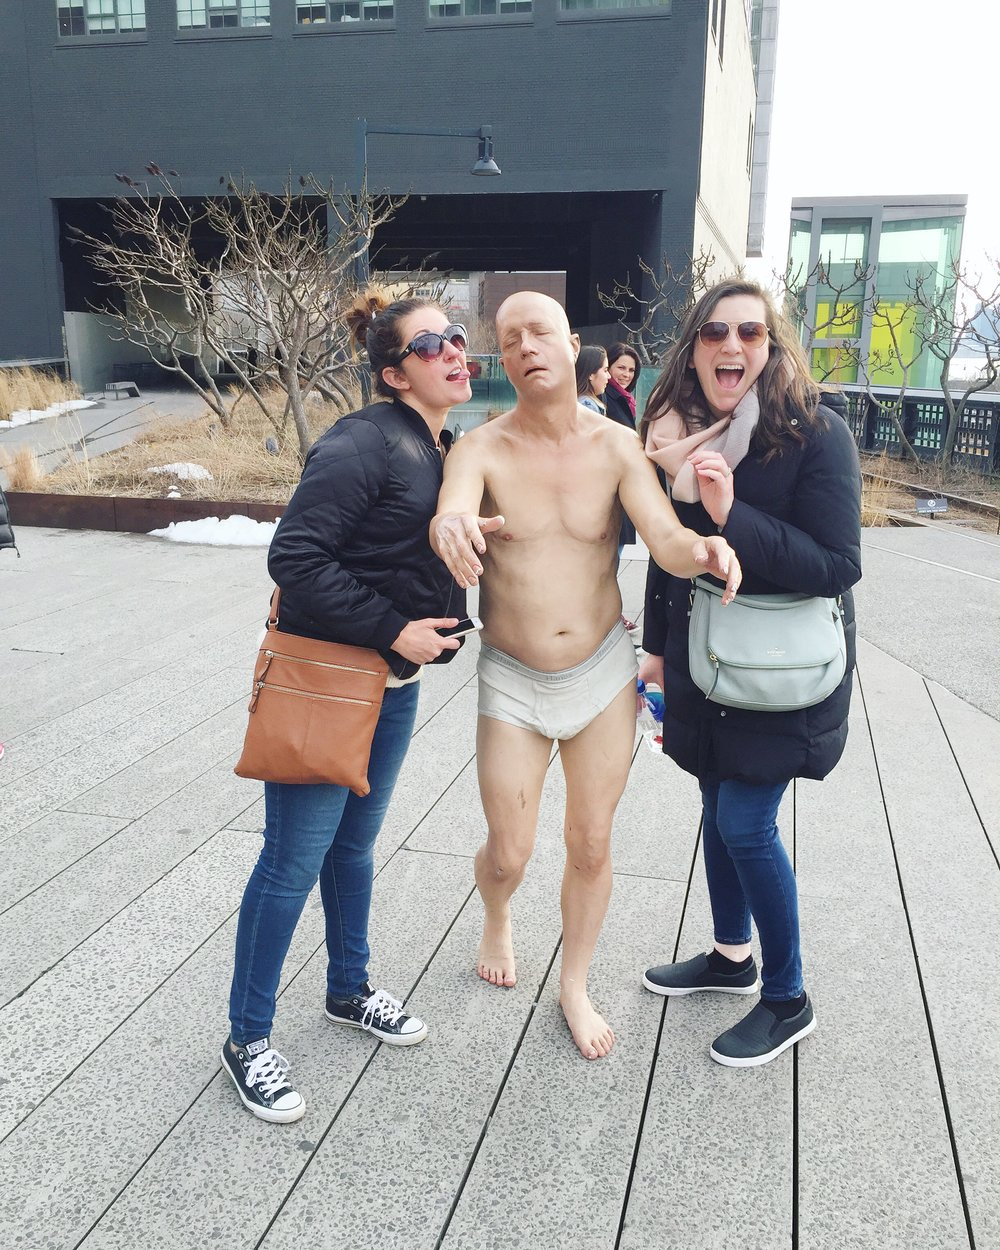 high-line-nyc-underwear-statue-art